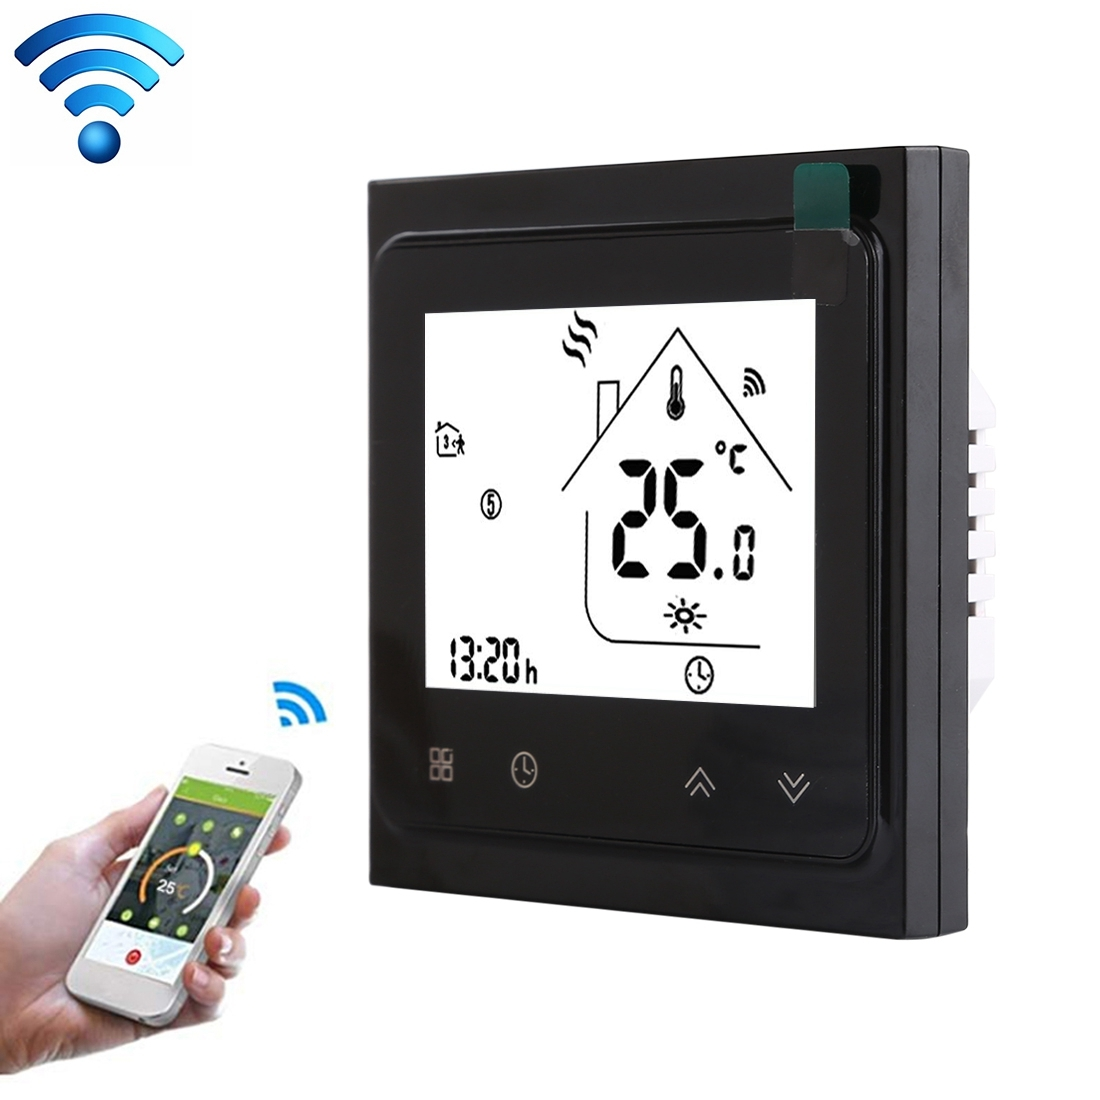 BHT-002GALW 3A Load Water Heating Type LCD Digital Heating Room Thermostat with Time Display, WiFi Control (Black)